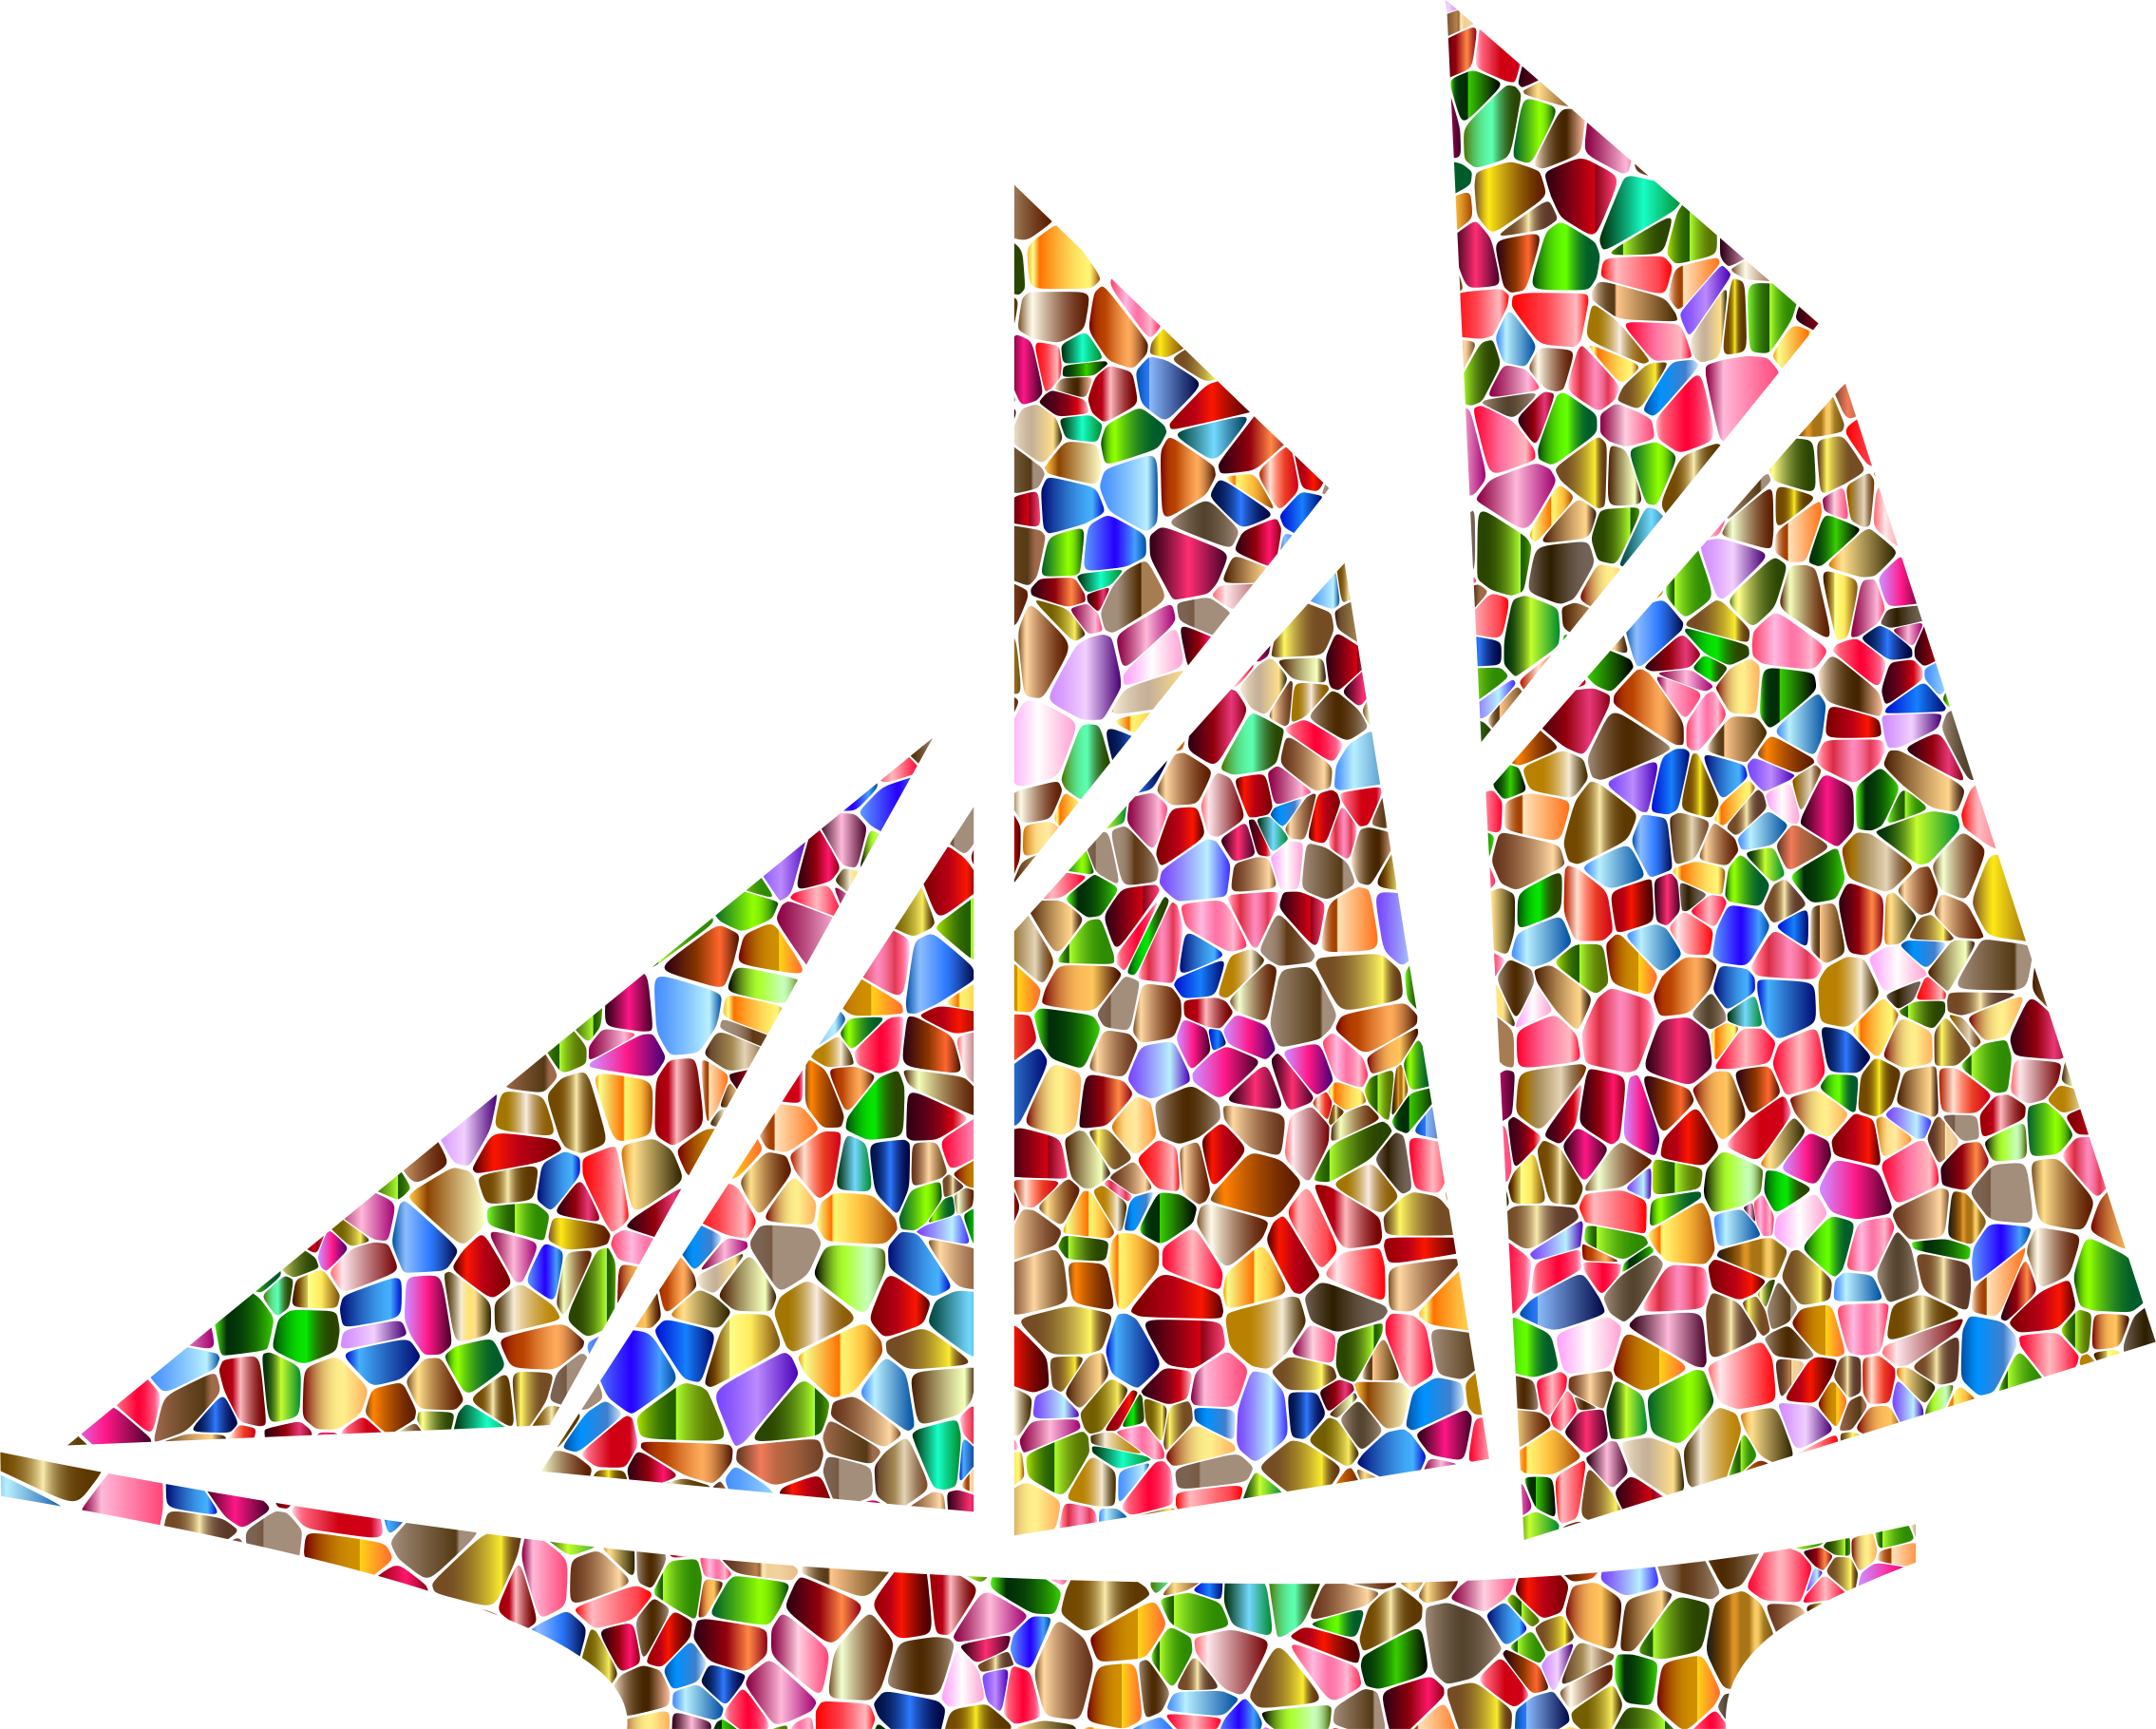 Polychromatic Tiled Sailboat by GDJ